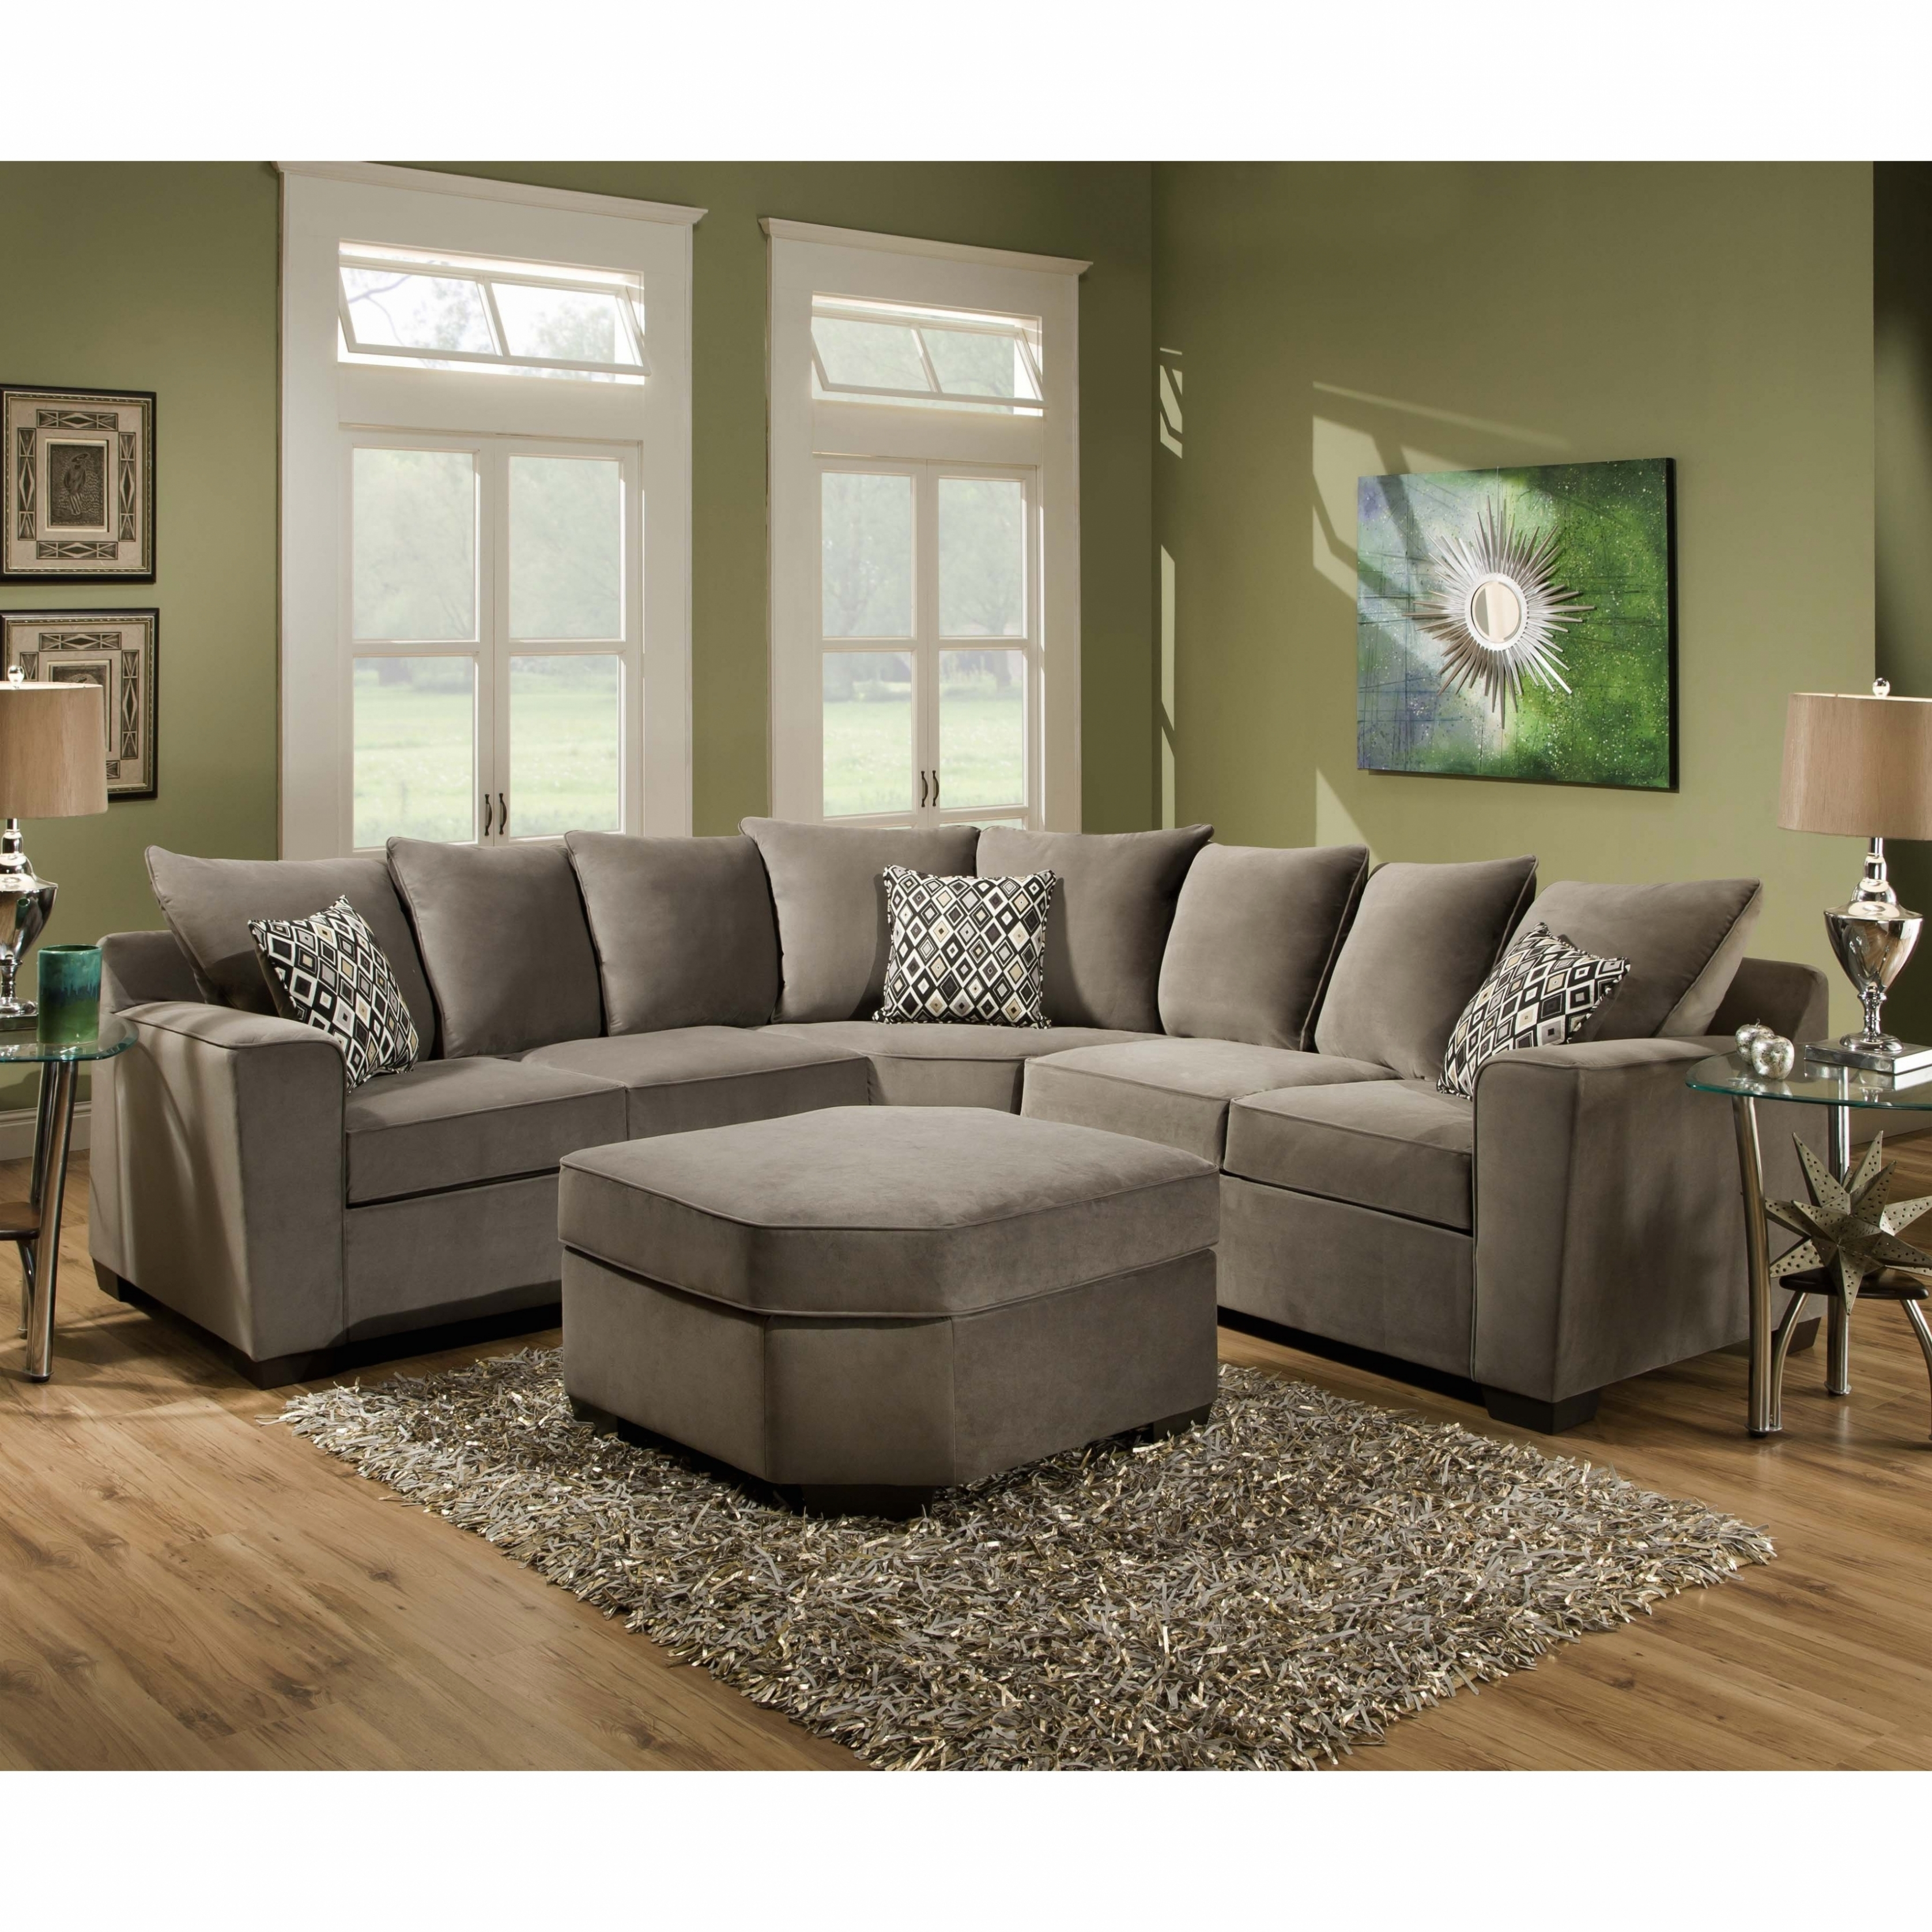 Fashionable Sofa: Havertys Sectional Sofas Nrhcares Within Lovely Havertys With Sectional Sofas At Havertys (View 8 of 20)